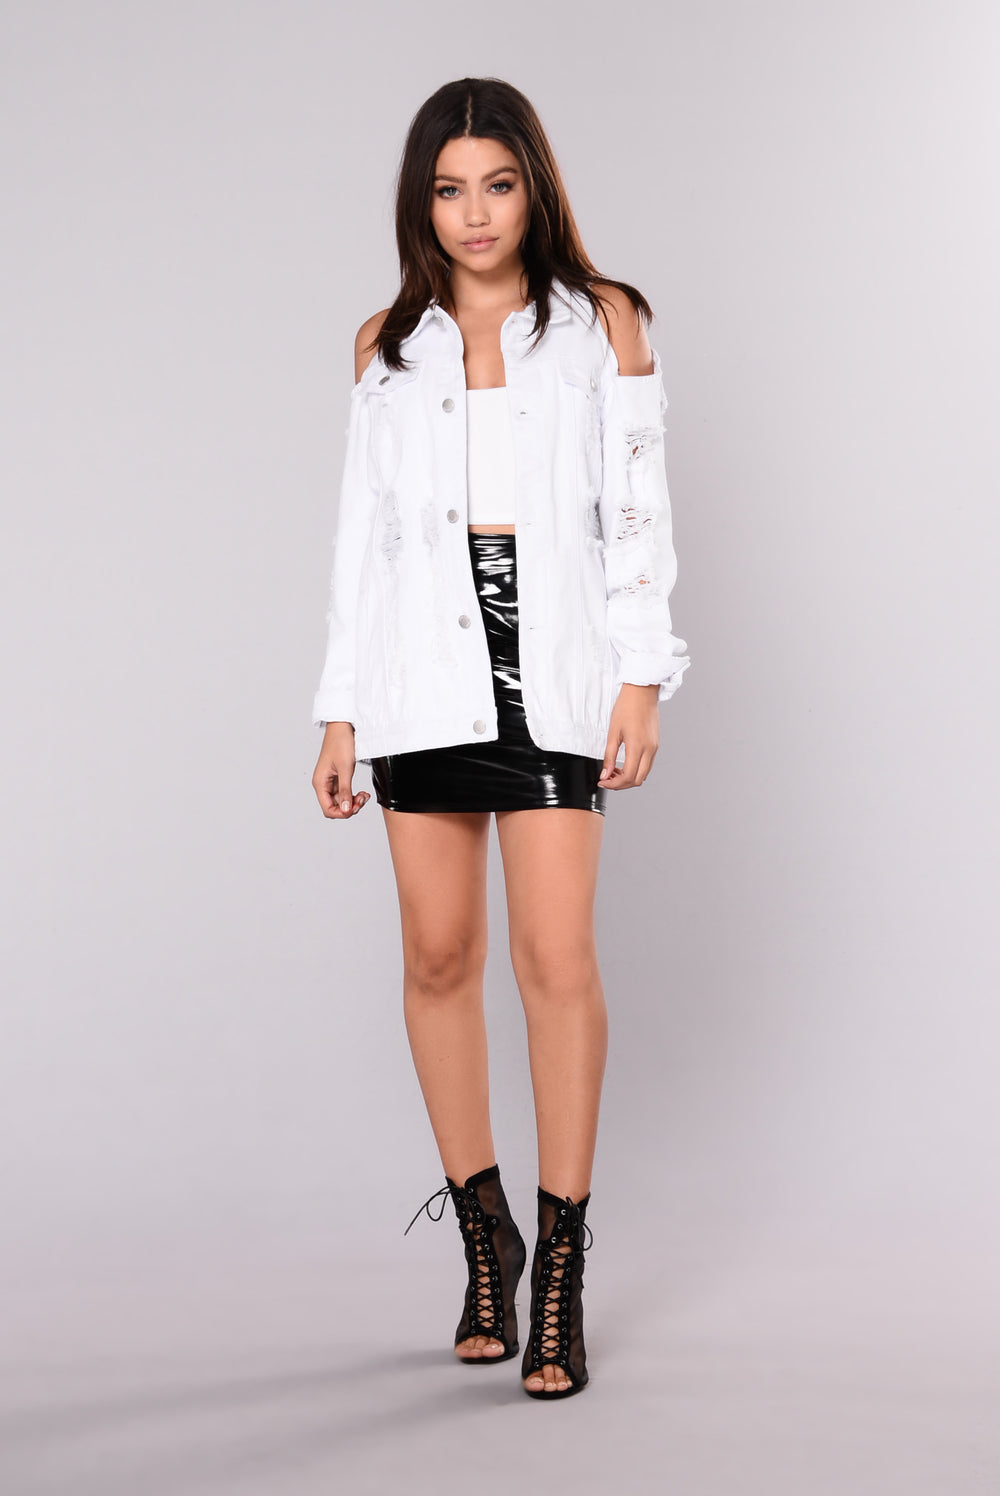 One Too Many Times Jacket - White